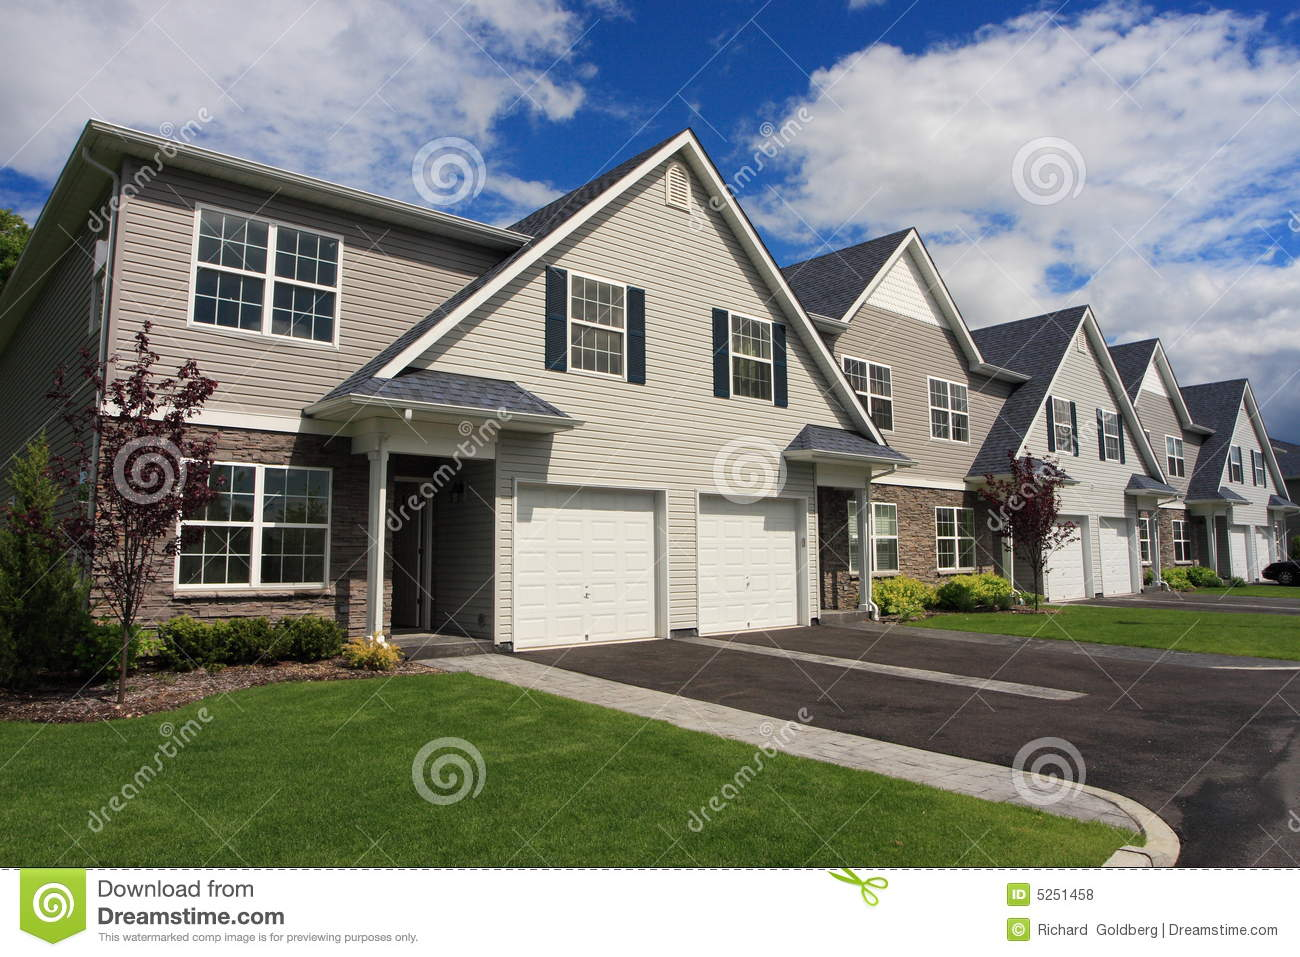 Town Houses Royalty Free Stock Photos Image 5251458